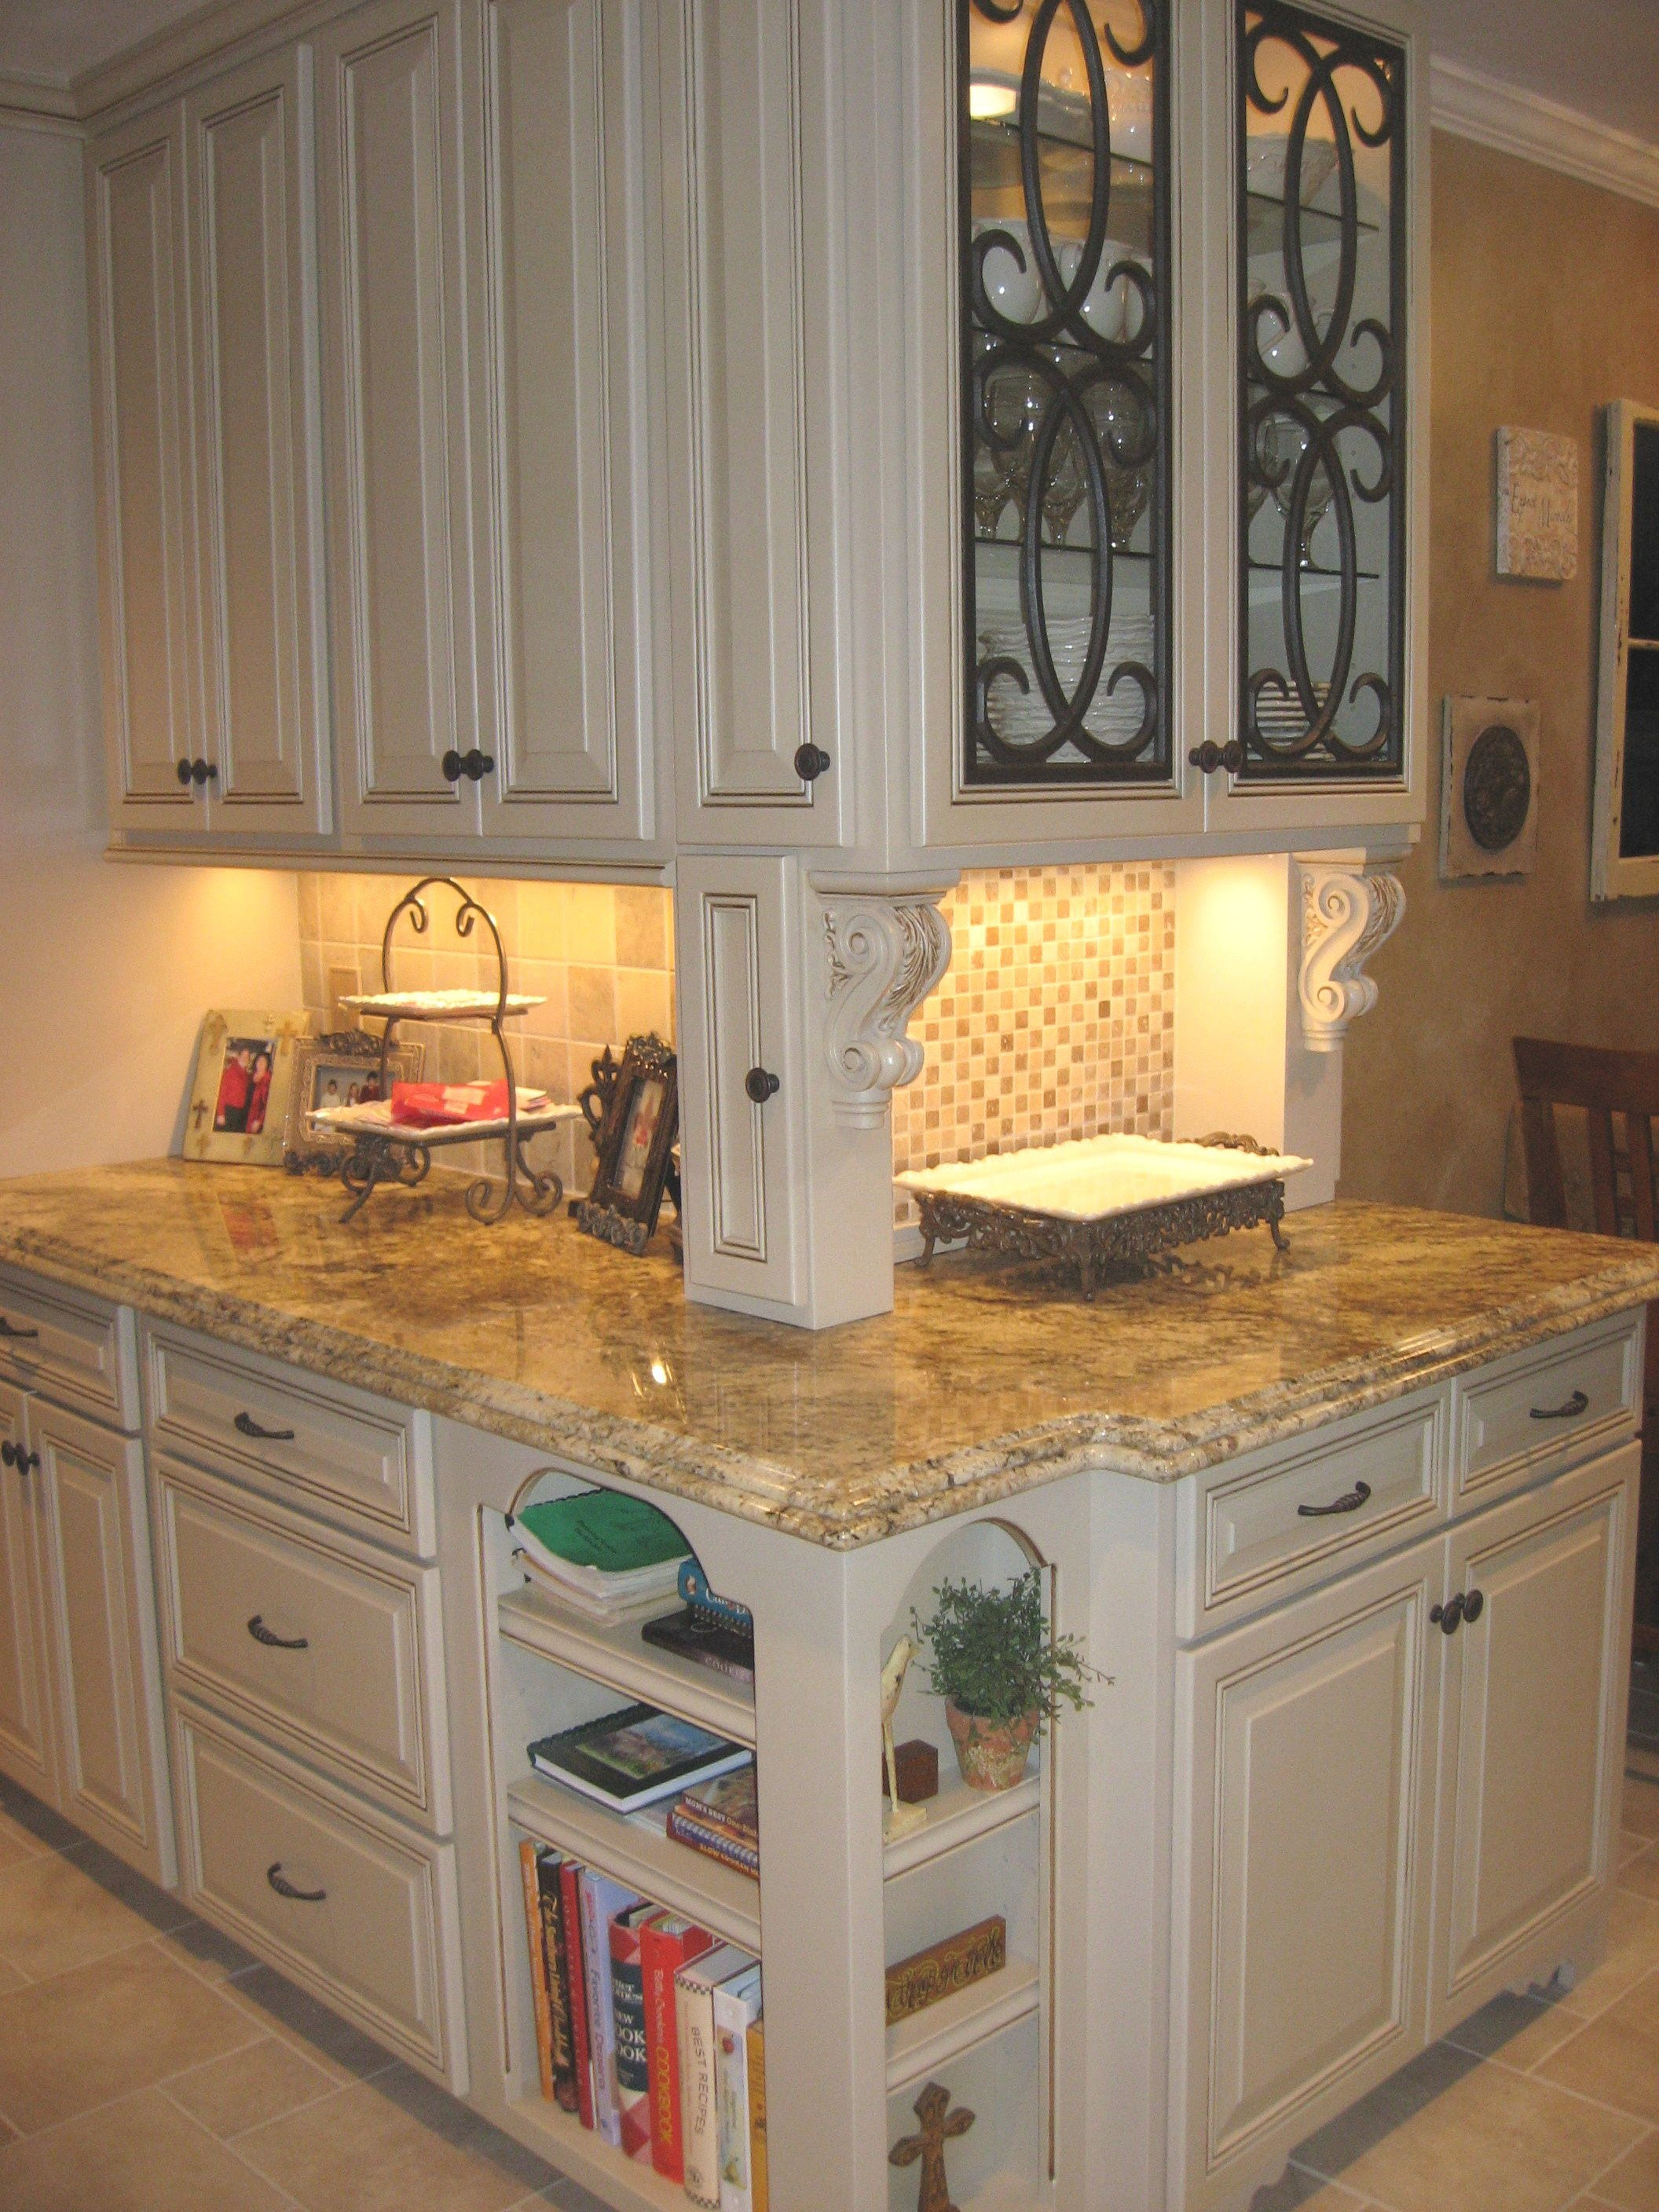 Custom Kitchen Cabinet Doors Lovely Custom Built Cabinets Painted with Highlights Faux Iron